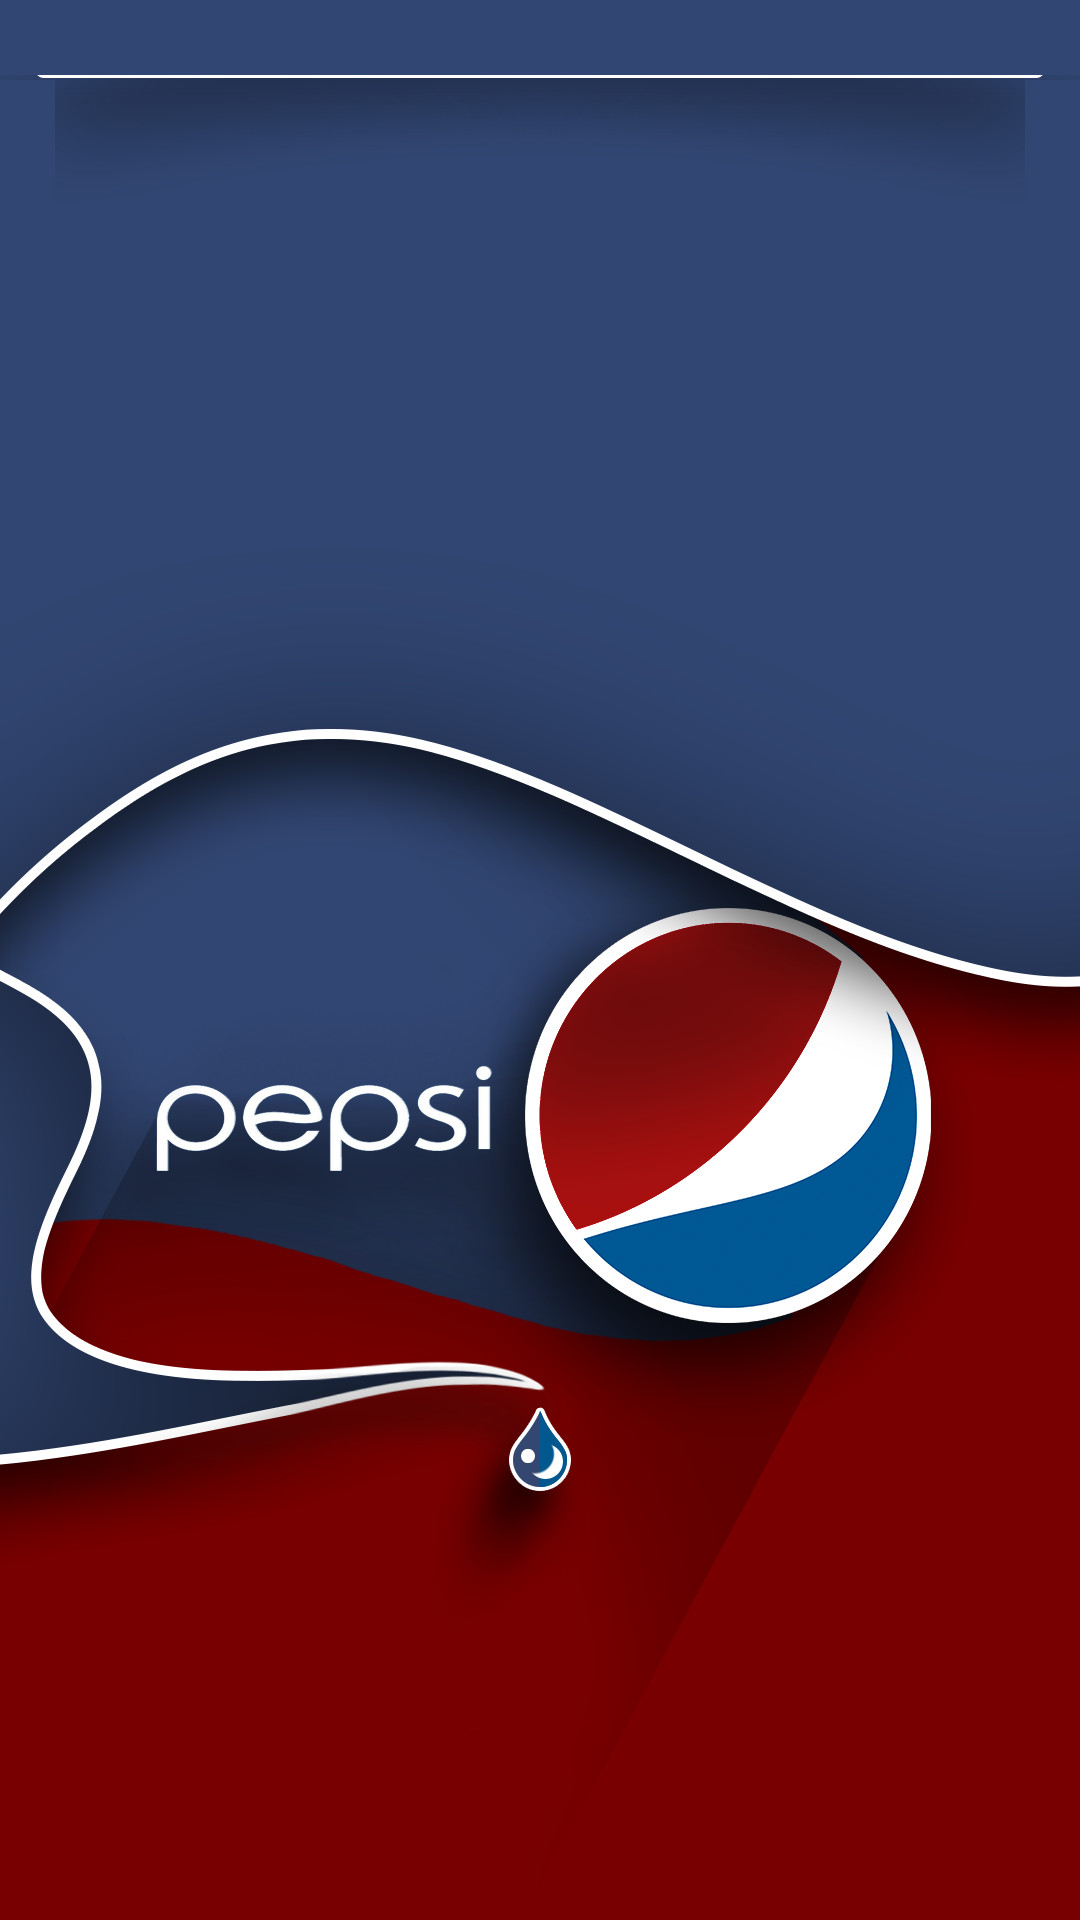 Res: 1080x1920, Pepsi Red White and Blue Wallpaper